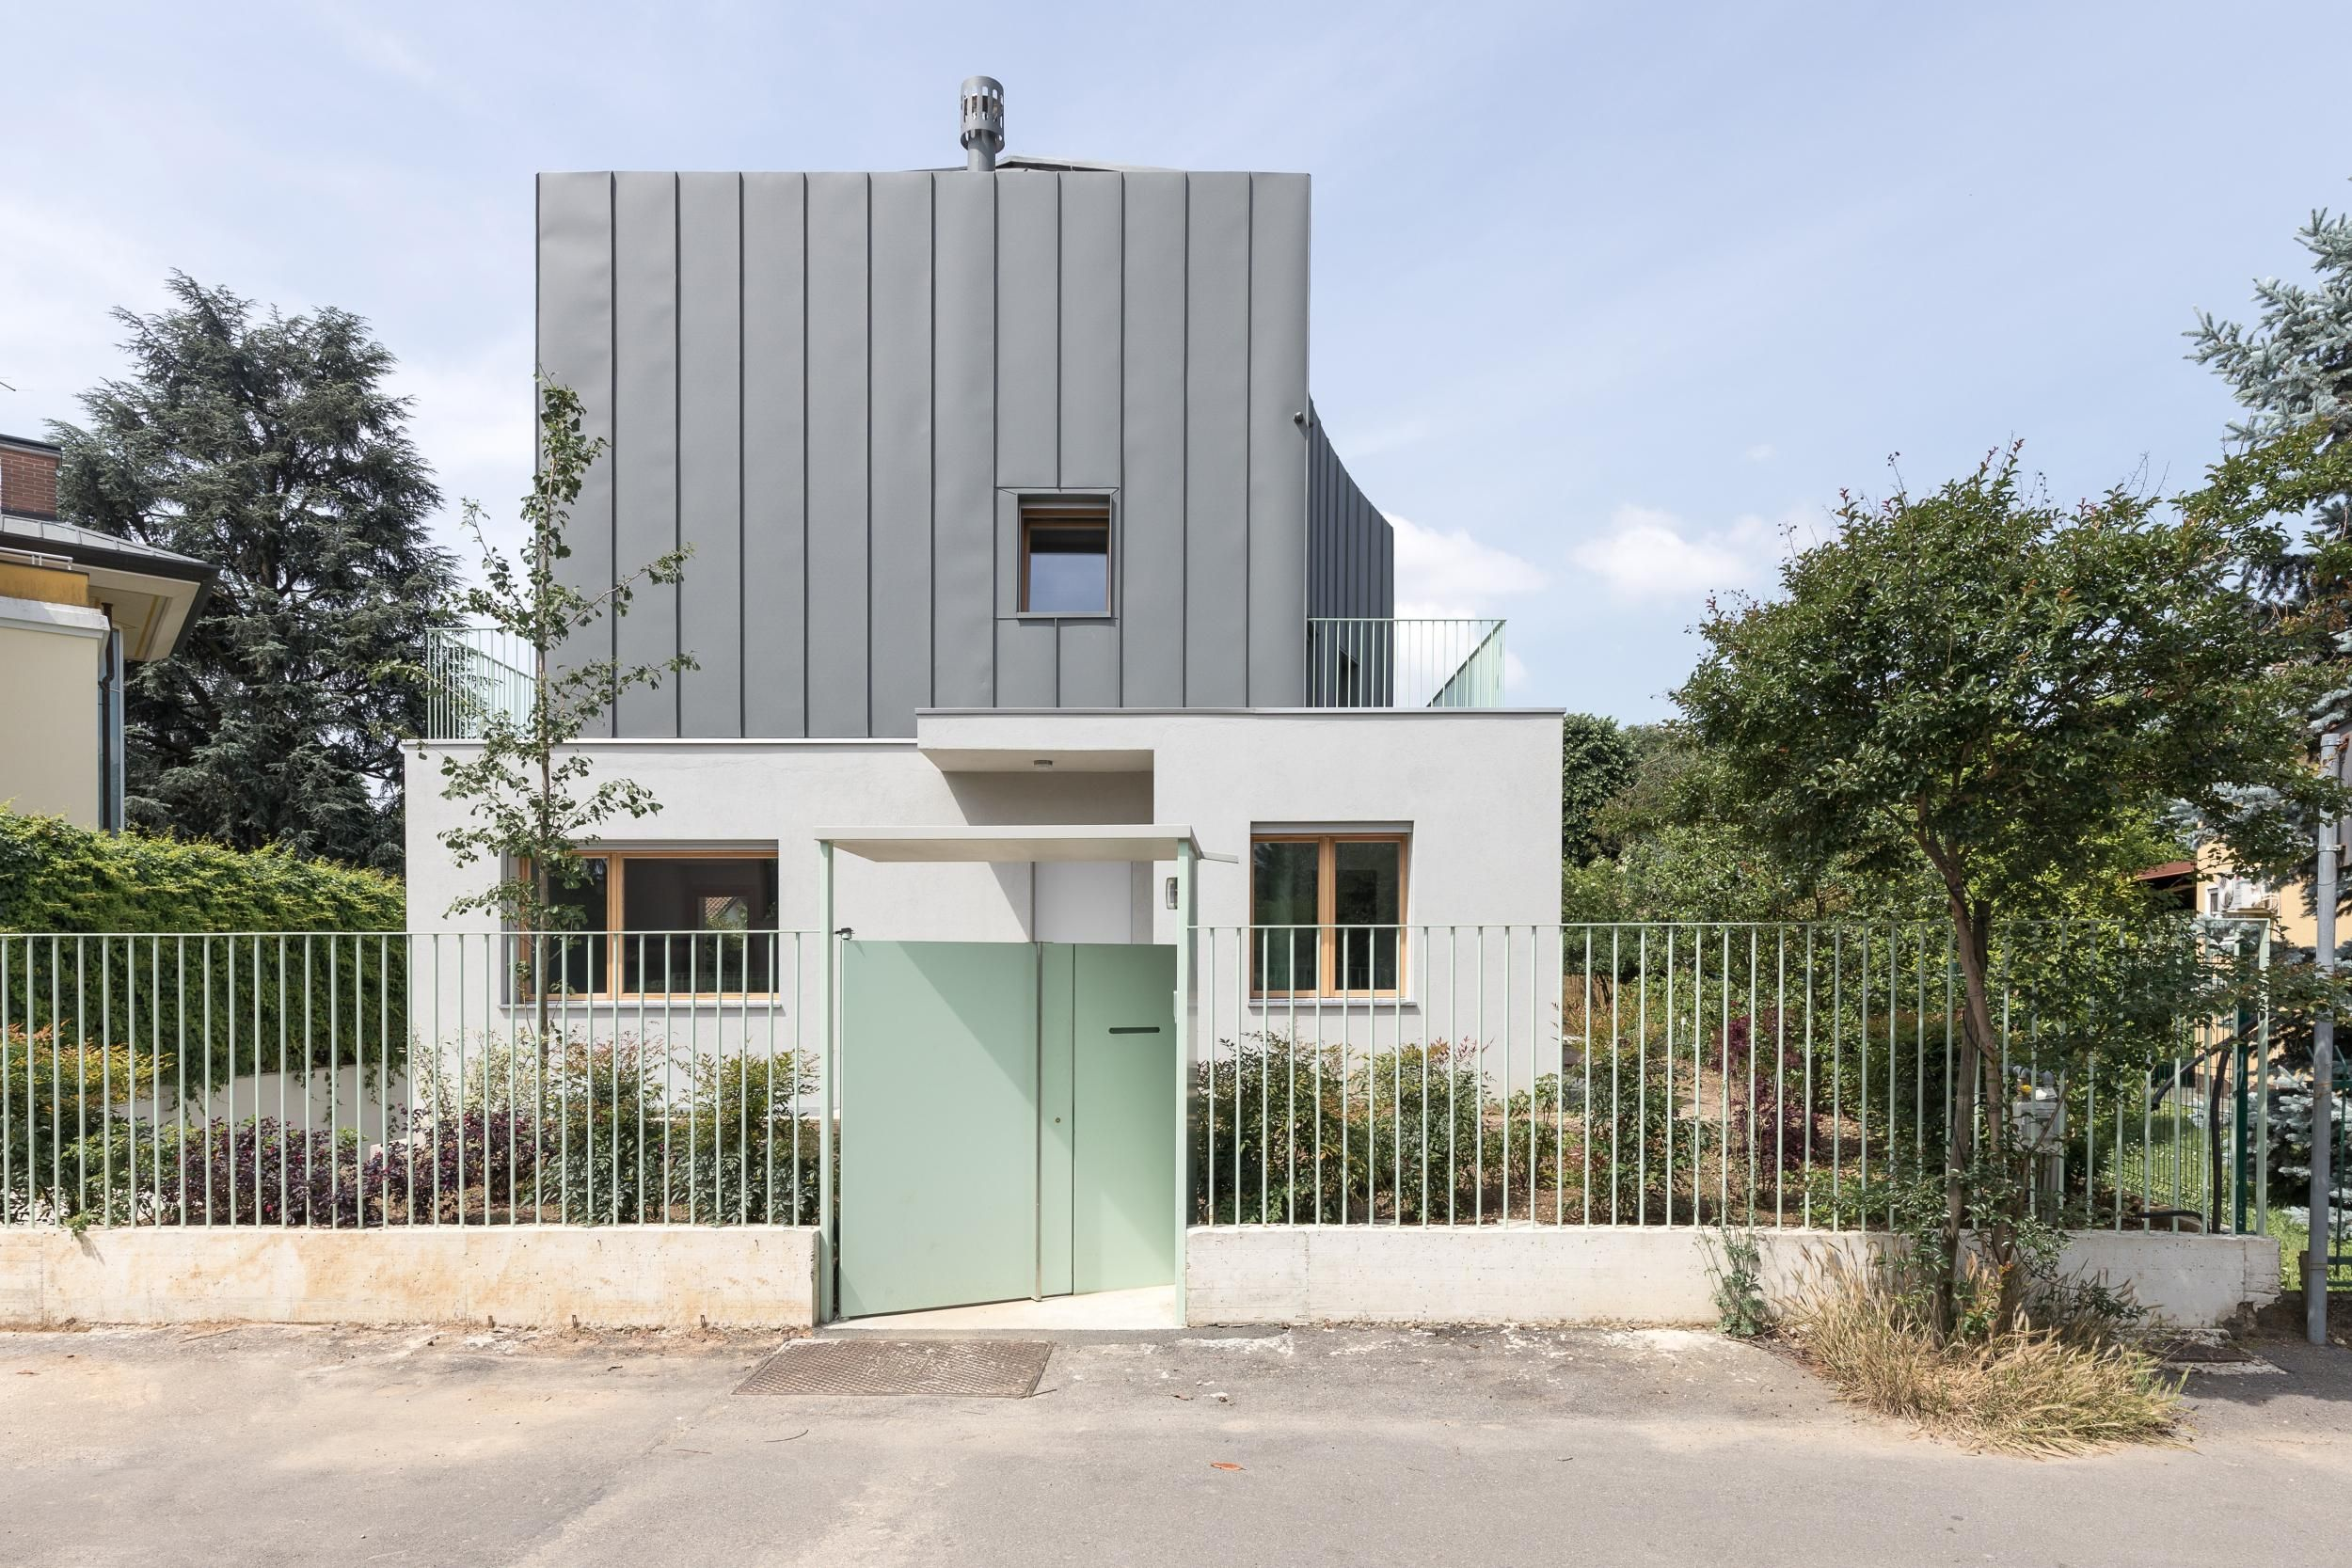 Industrial Architecture Inspires A Villa Renovation In The Suburbs Of Milan In 2020 Architecture Architect Industrial Architecture